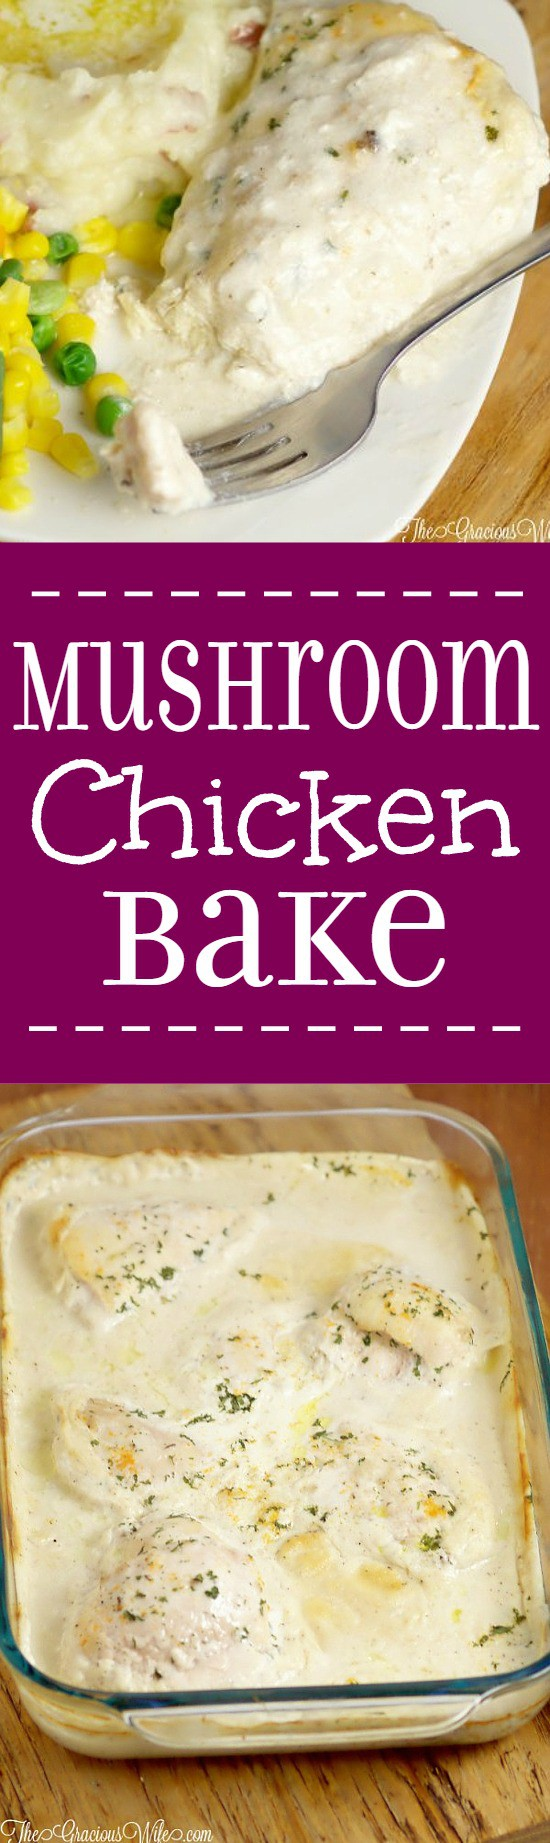 Mushroom Chicken Bake - an easy dinner recipe idea great for the whole family! Seriously, you can make this dinner idea so fast that you don't even need to thaw the chicken. My kids adore the creamy gravy and can't get enough whenever I make this